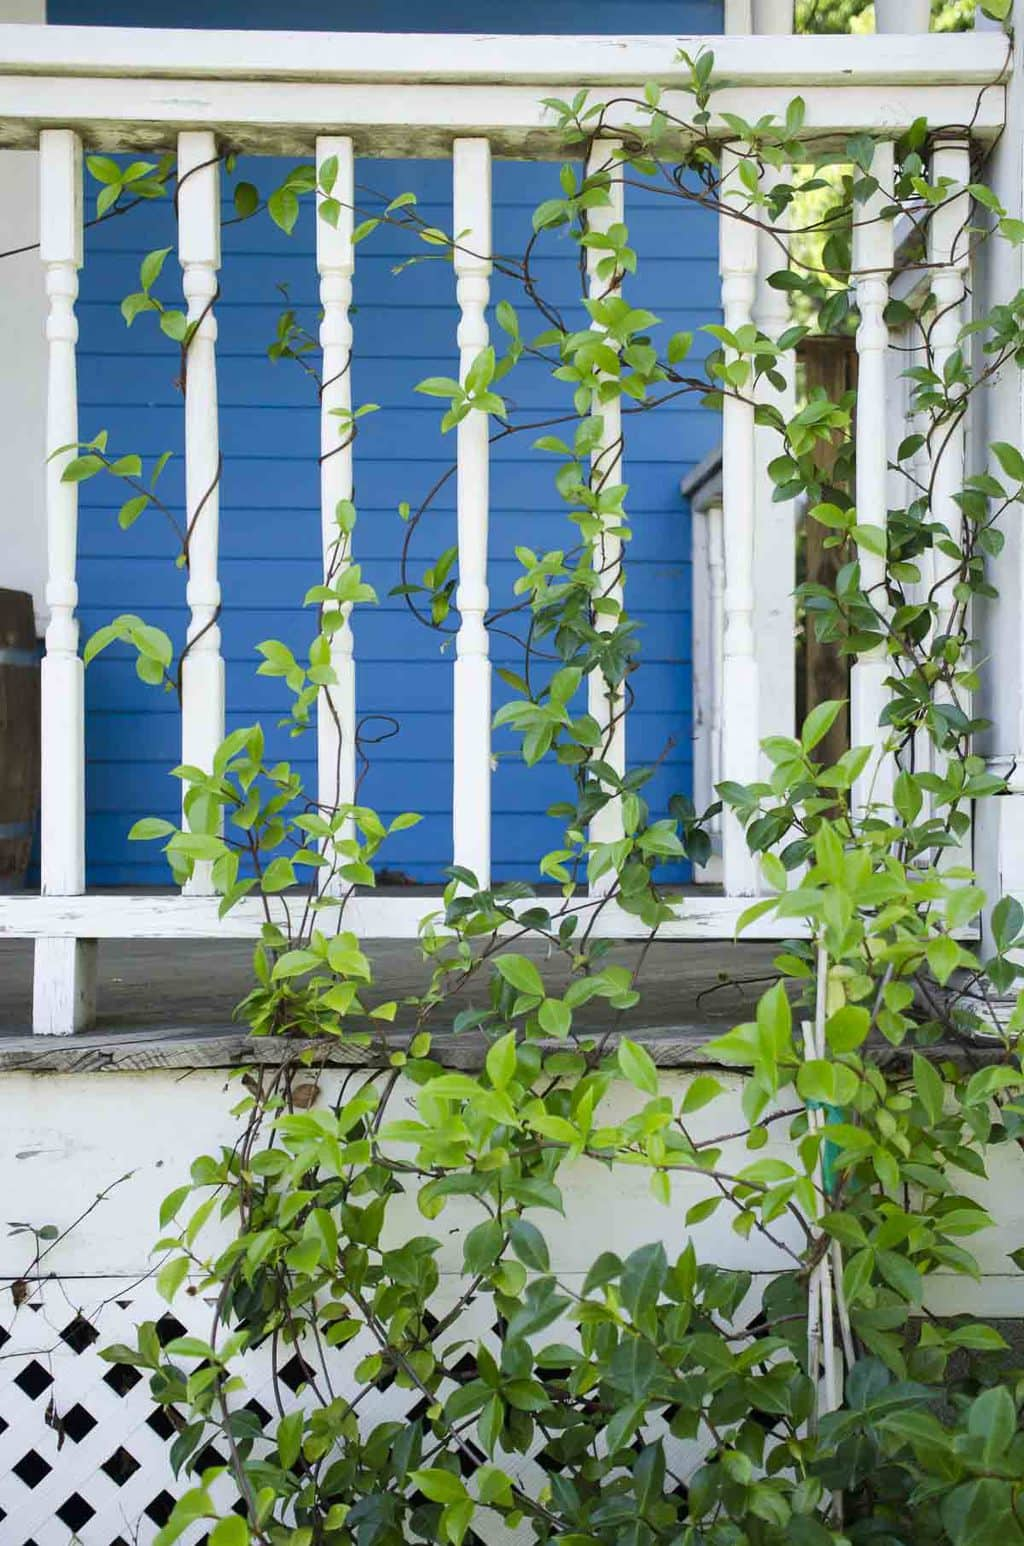 Jasmine on porch railing via @thouswellblog